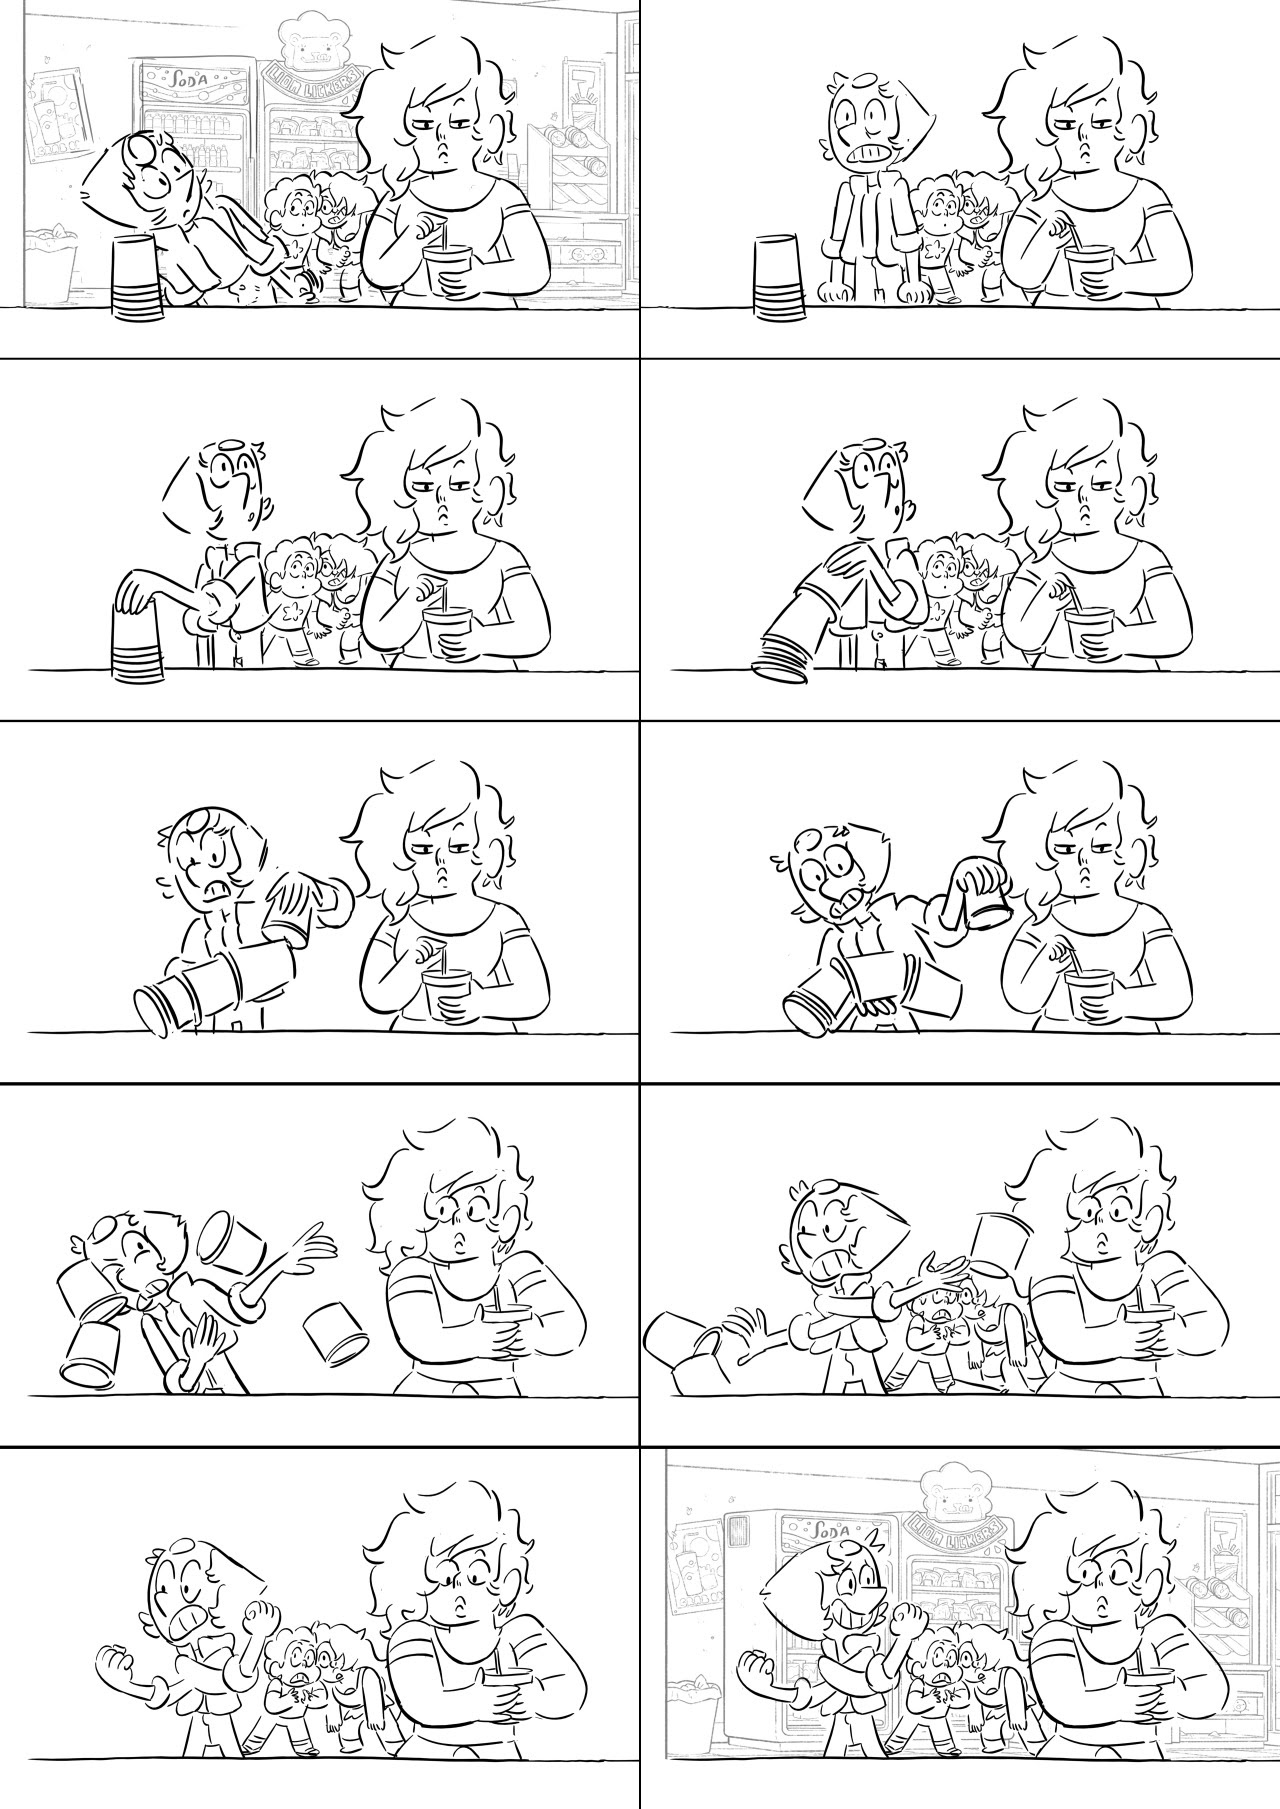 """Here are some boards I did from the Steven Universe episode """"Last One Out of Beach City""""! I love going to shows, but maybe even more than that, I love making things about going to shows. Cars,..."""